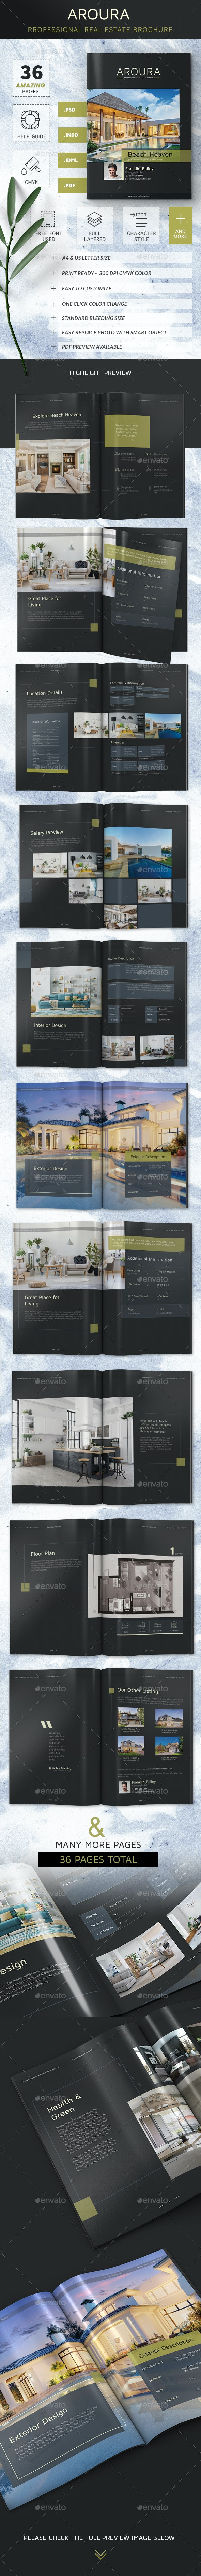 Real Estate Brochure - Aroura Dark Version - Portfolio Brochures